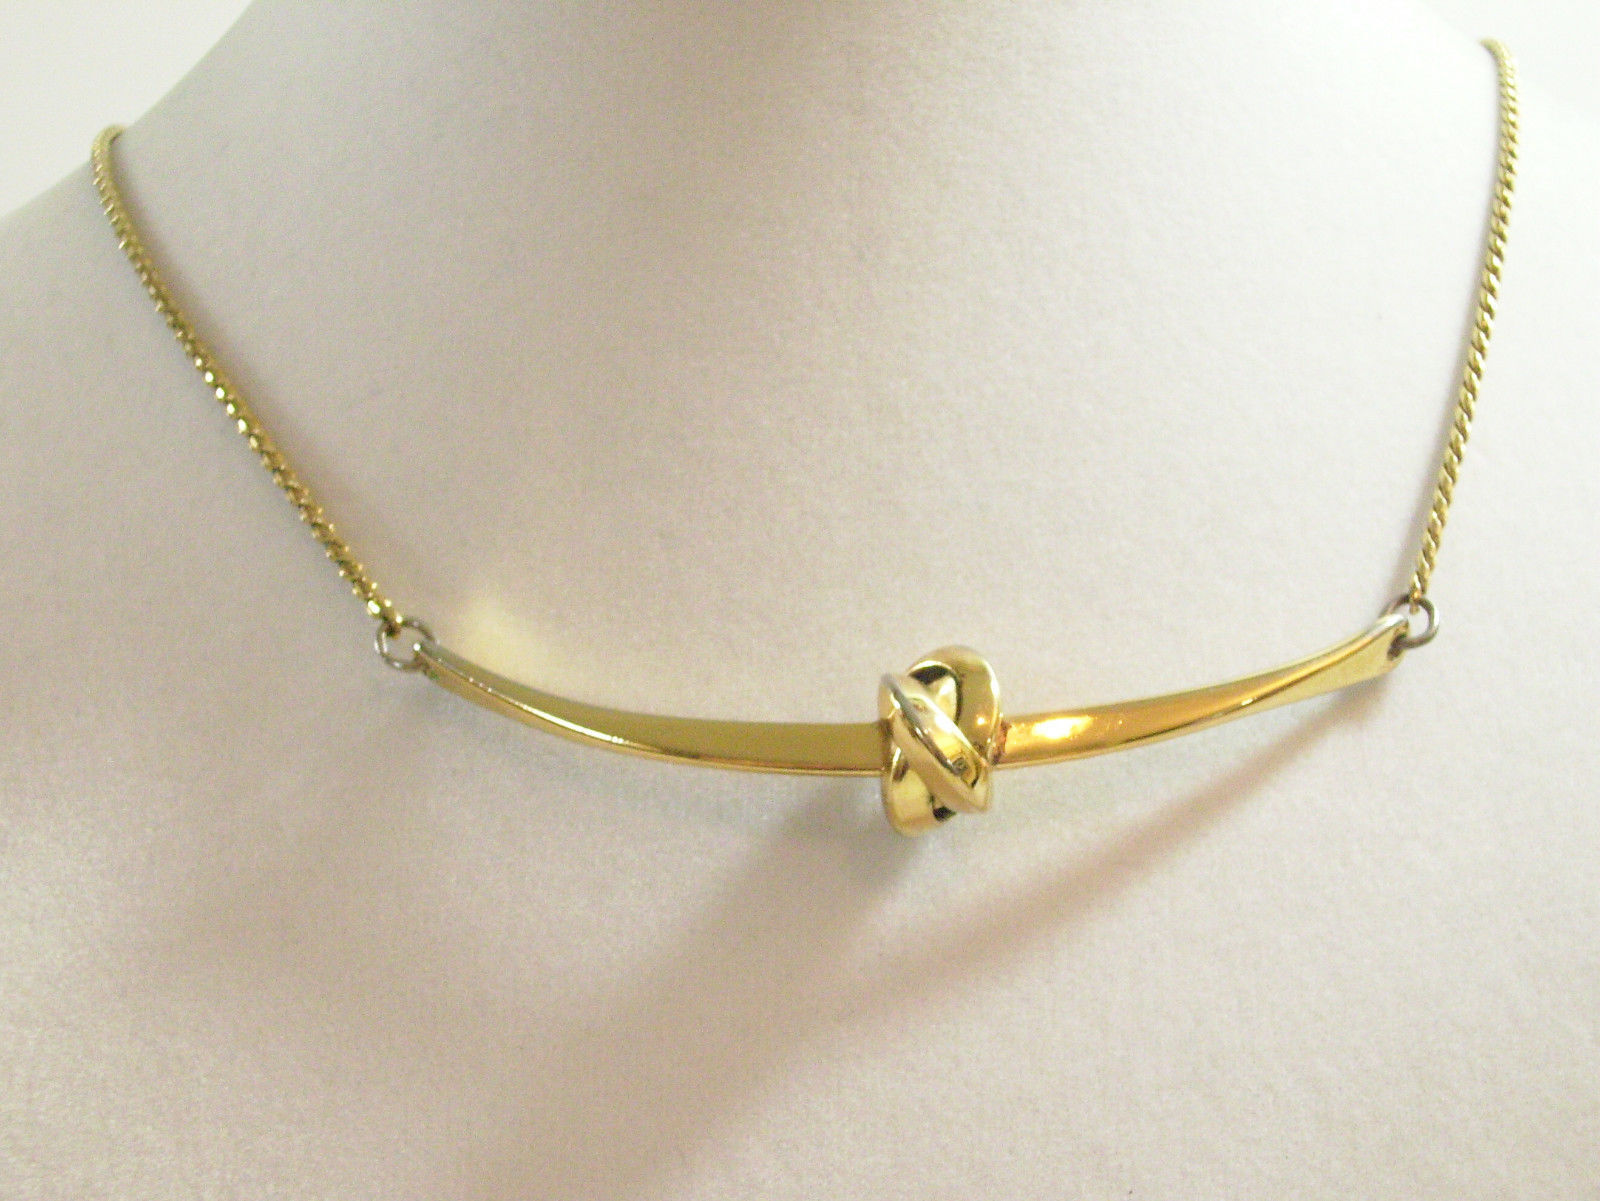 NAPIER LOVE KNOT Bar Gold Plated CHAIN Necklace Choker Vintage STUNNING